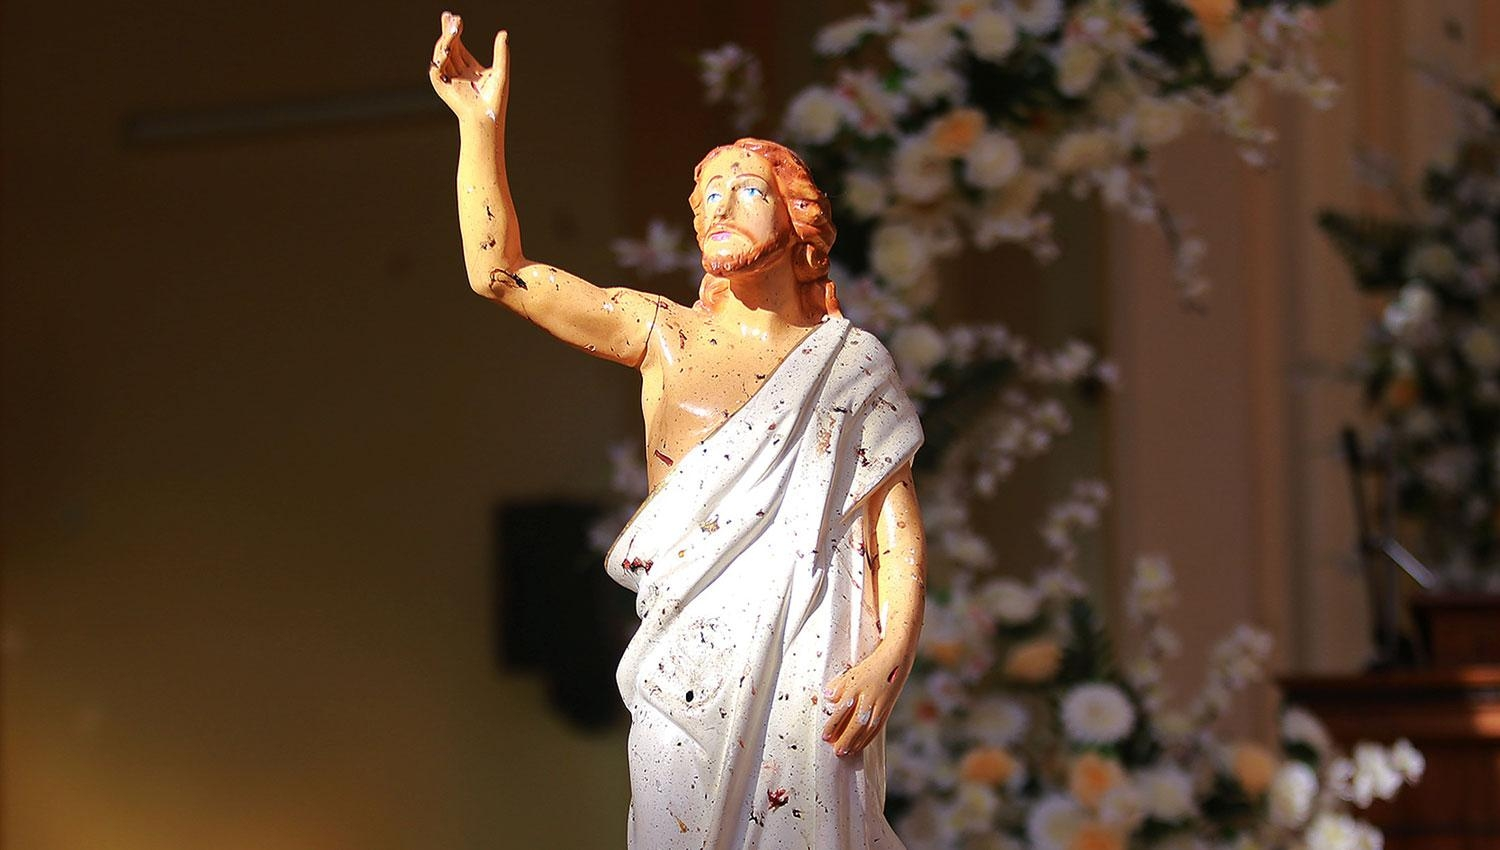 Blood stains are seen on a statue of Jesus Christ after a bomb blast inside a church in Negombo, Sri Lanka. (Photo: Reuters)